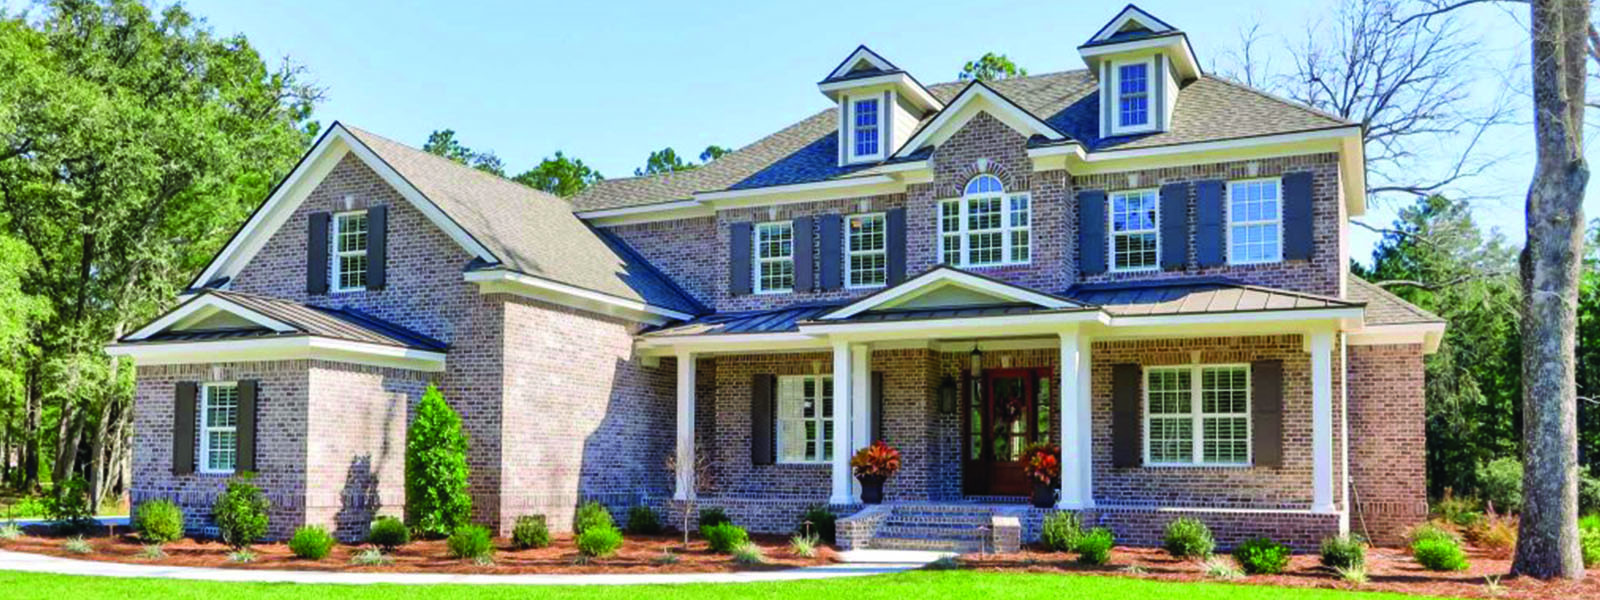 Savannah Quarters | Master Planned Community near Savannah GA | Coastal